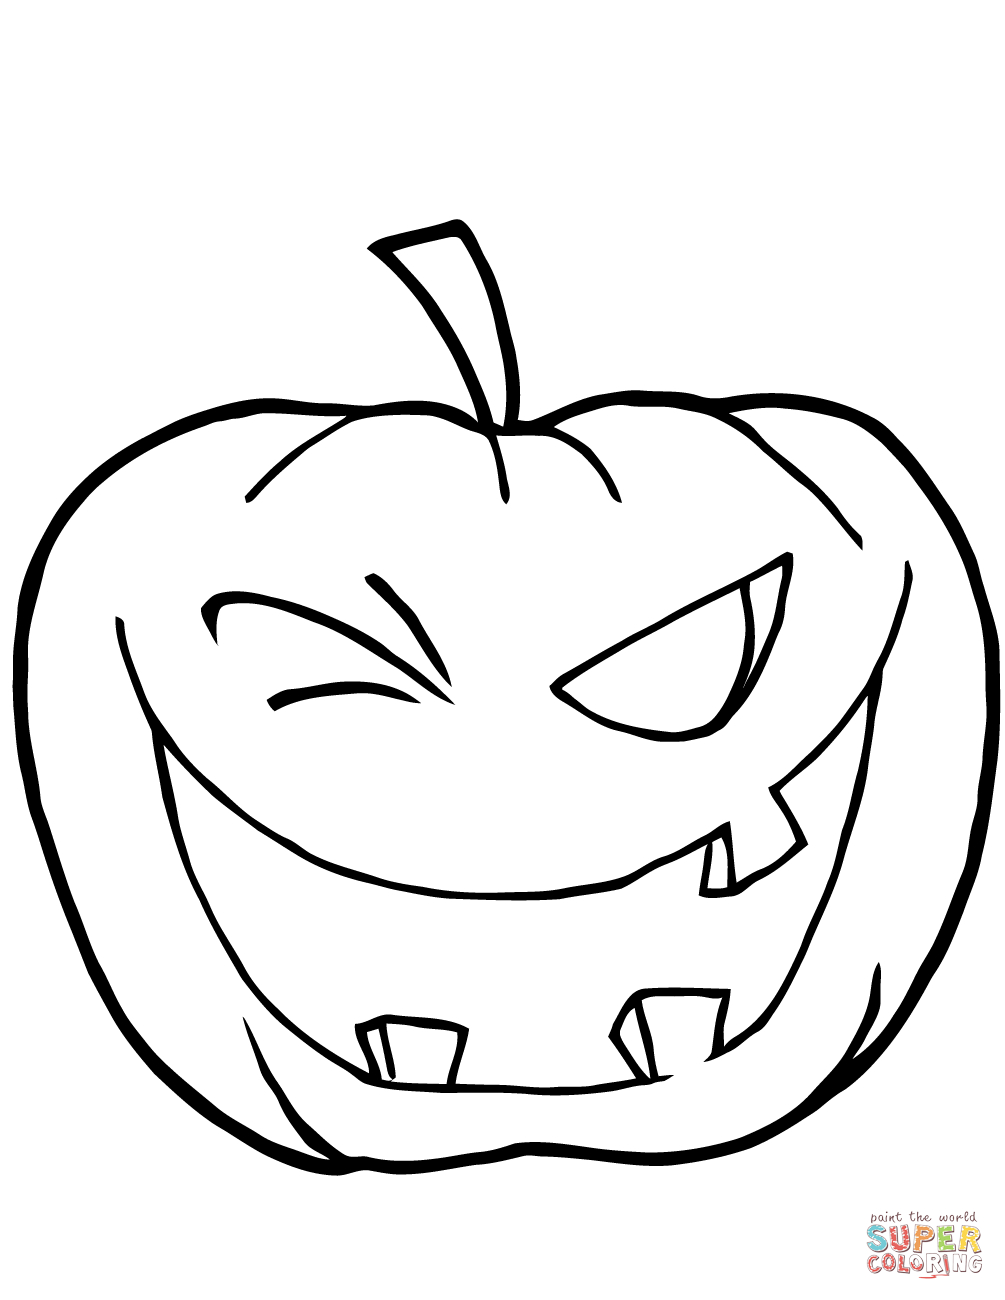 Printable Pumpkin Coloring Pages Coloring Pages Fantastic Halloween Pumpkin Coloring Pages For Kids